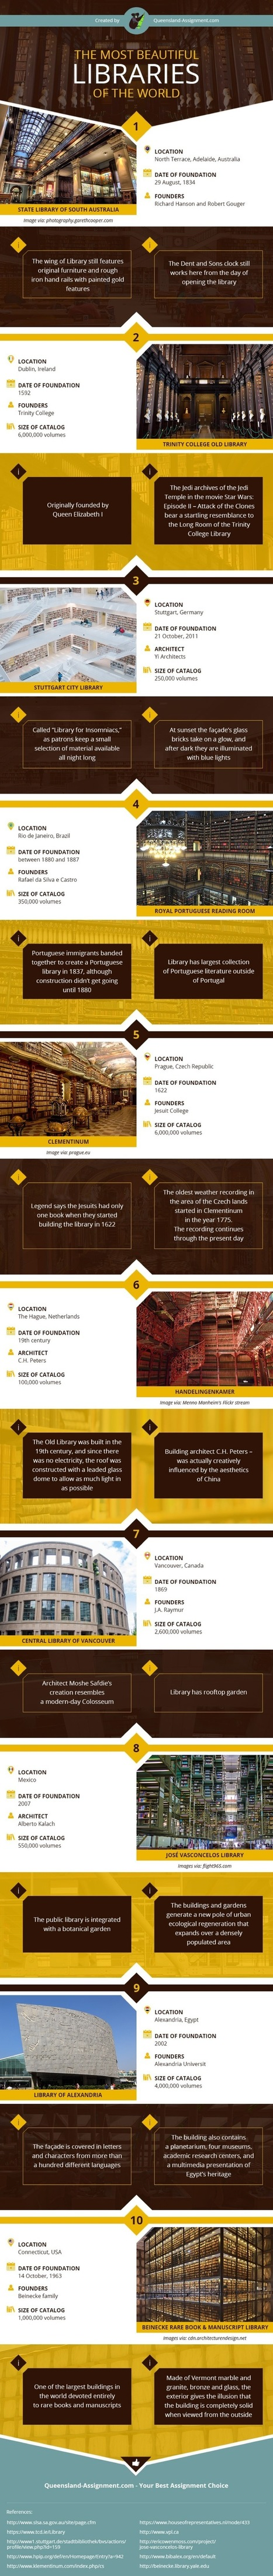 The most beautiful libraries in the world (infographic) | AdLit | Scoop.it